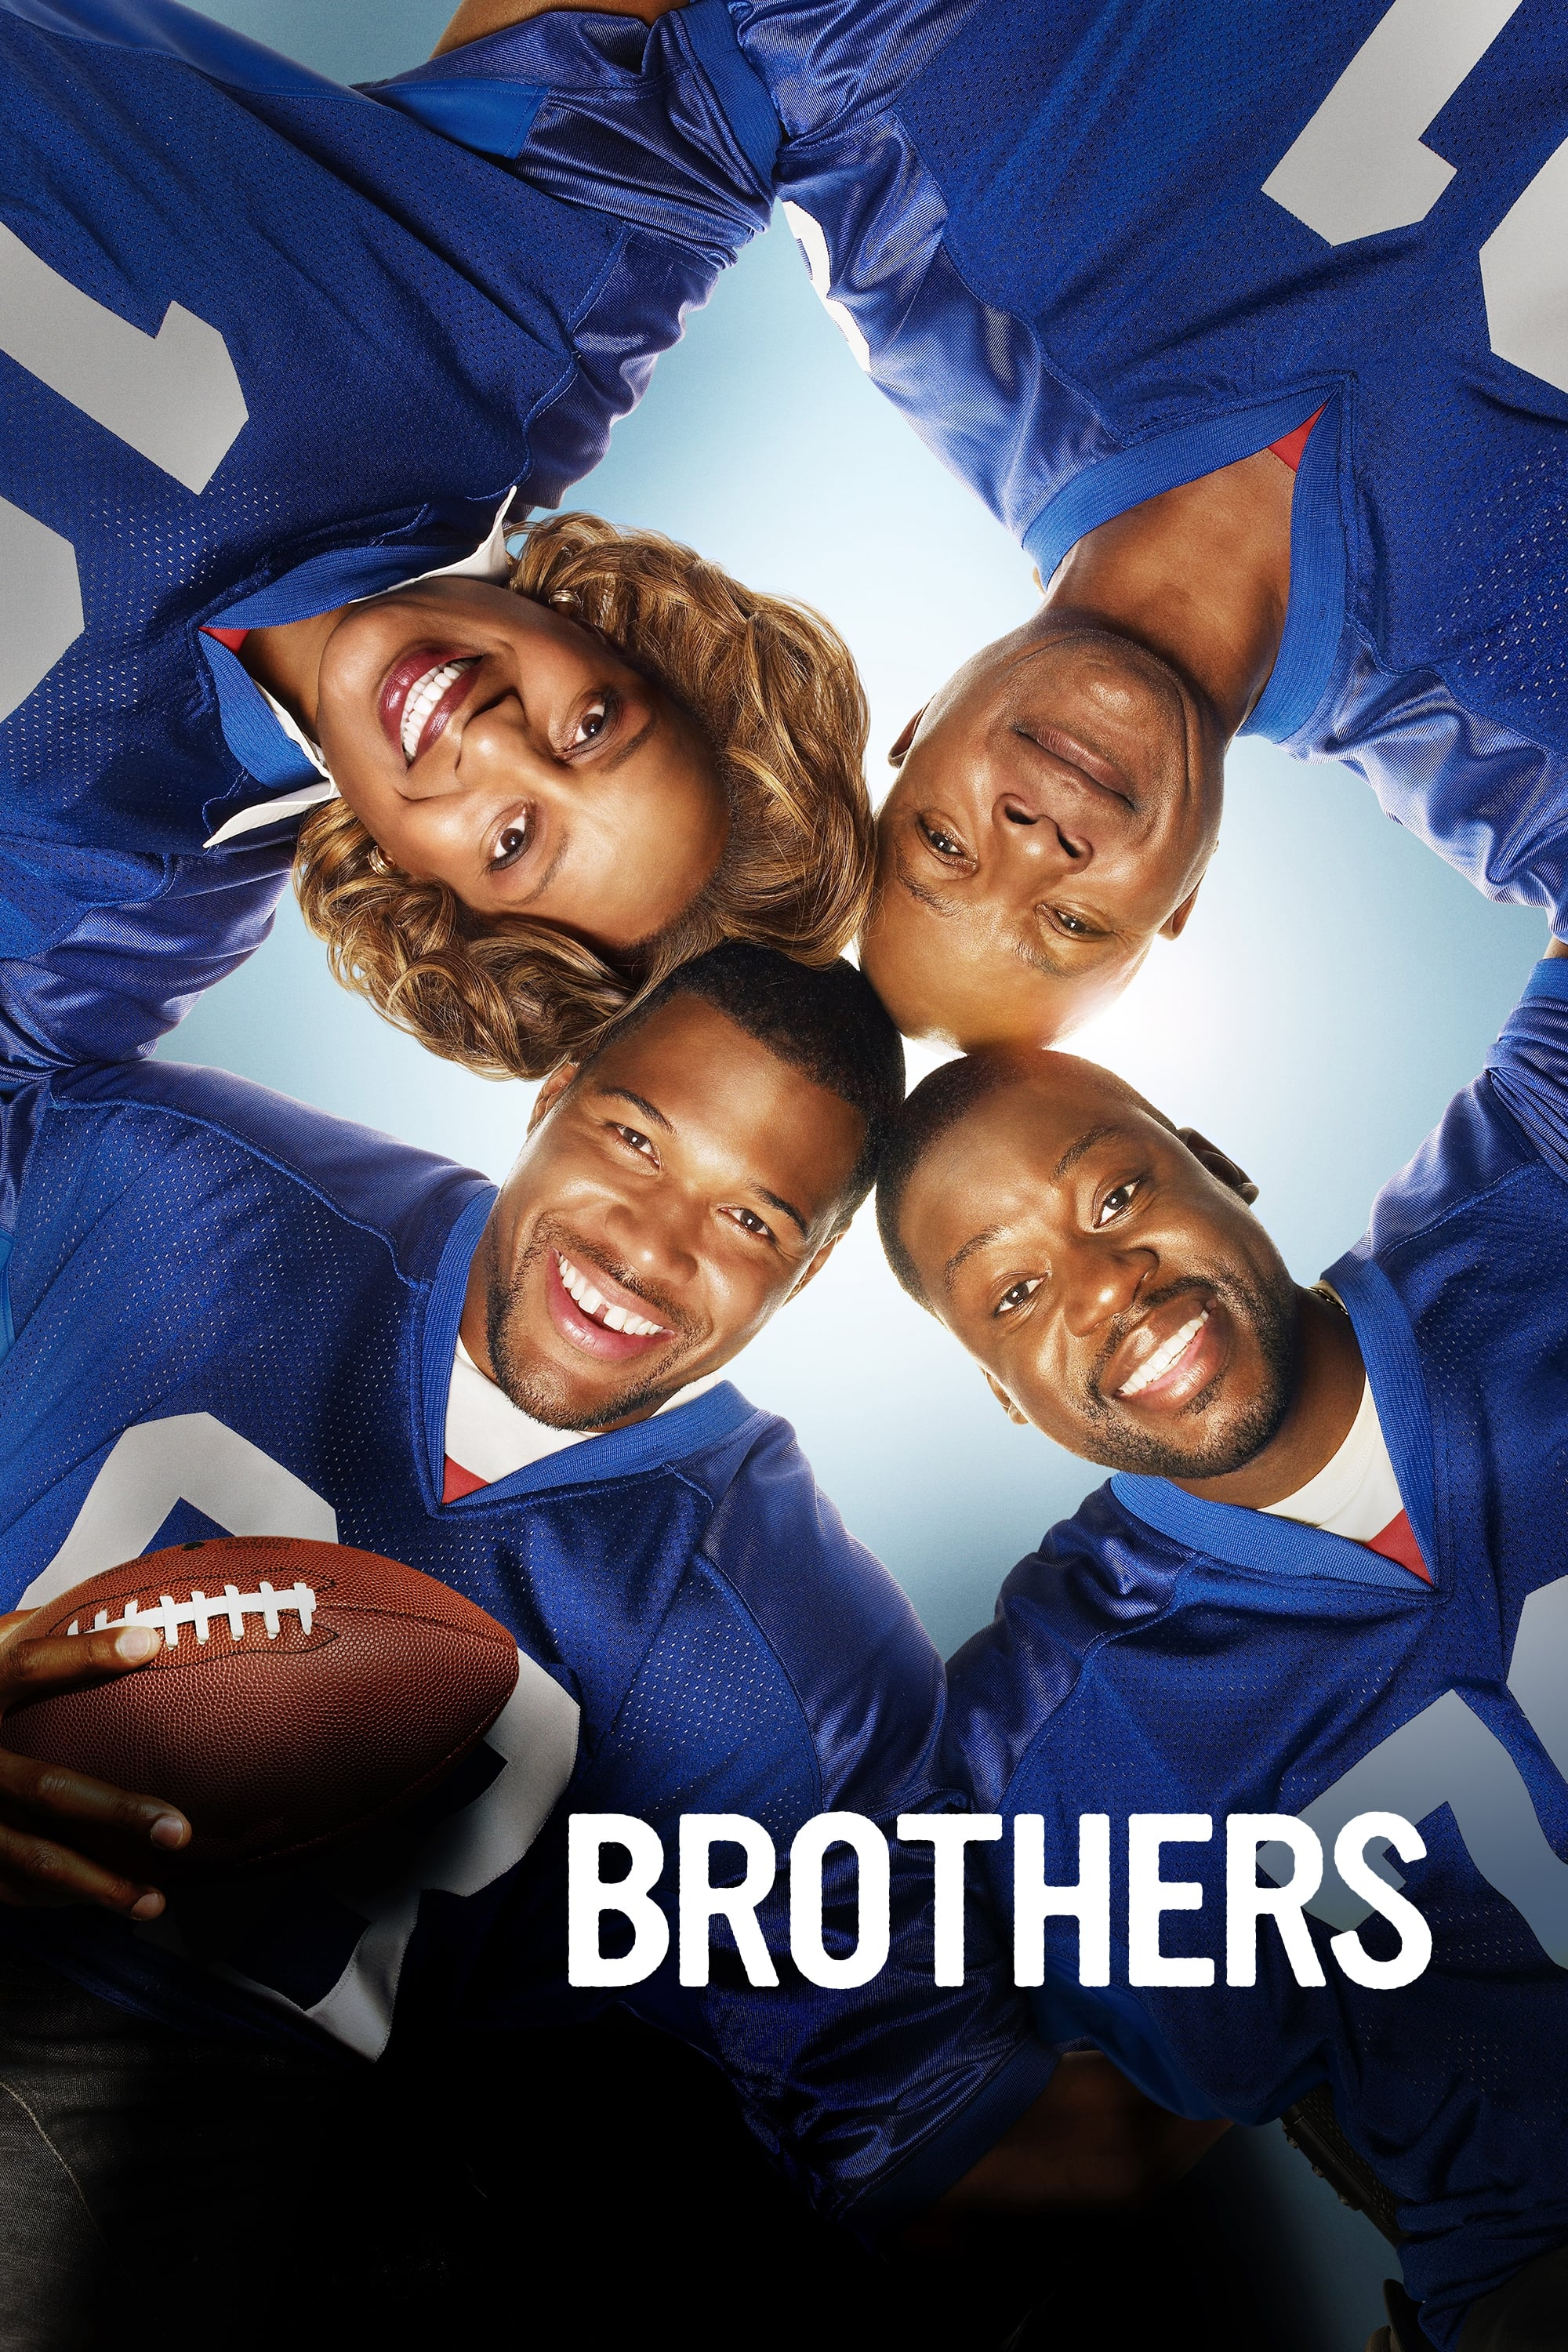 Brothers on FREECABLE TV